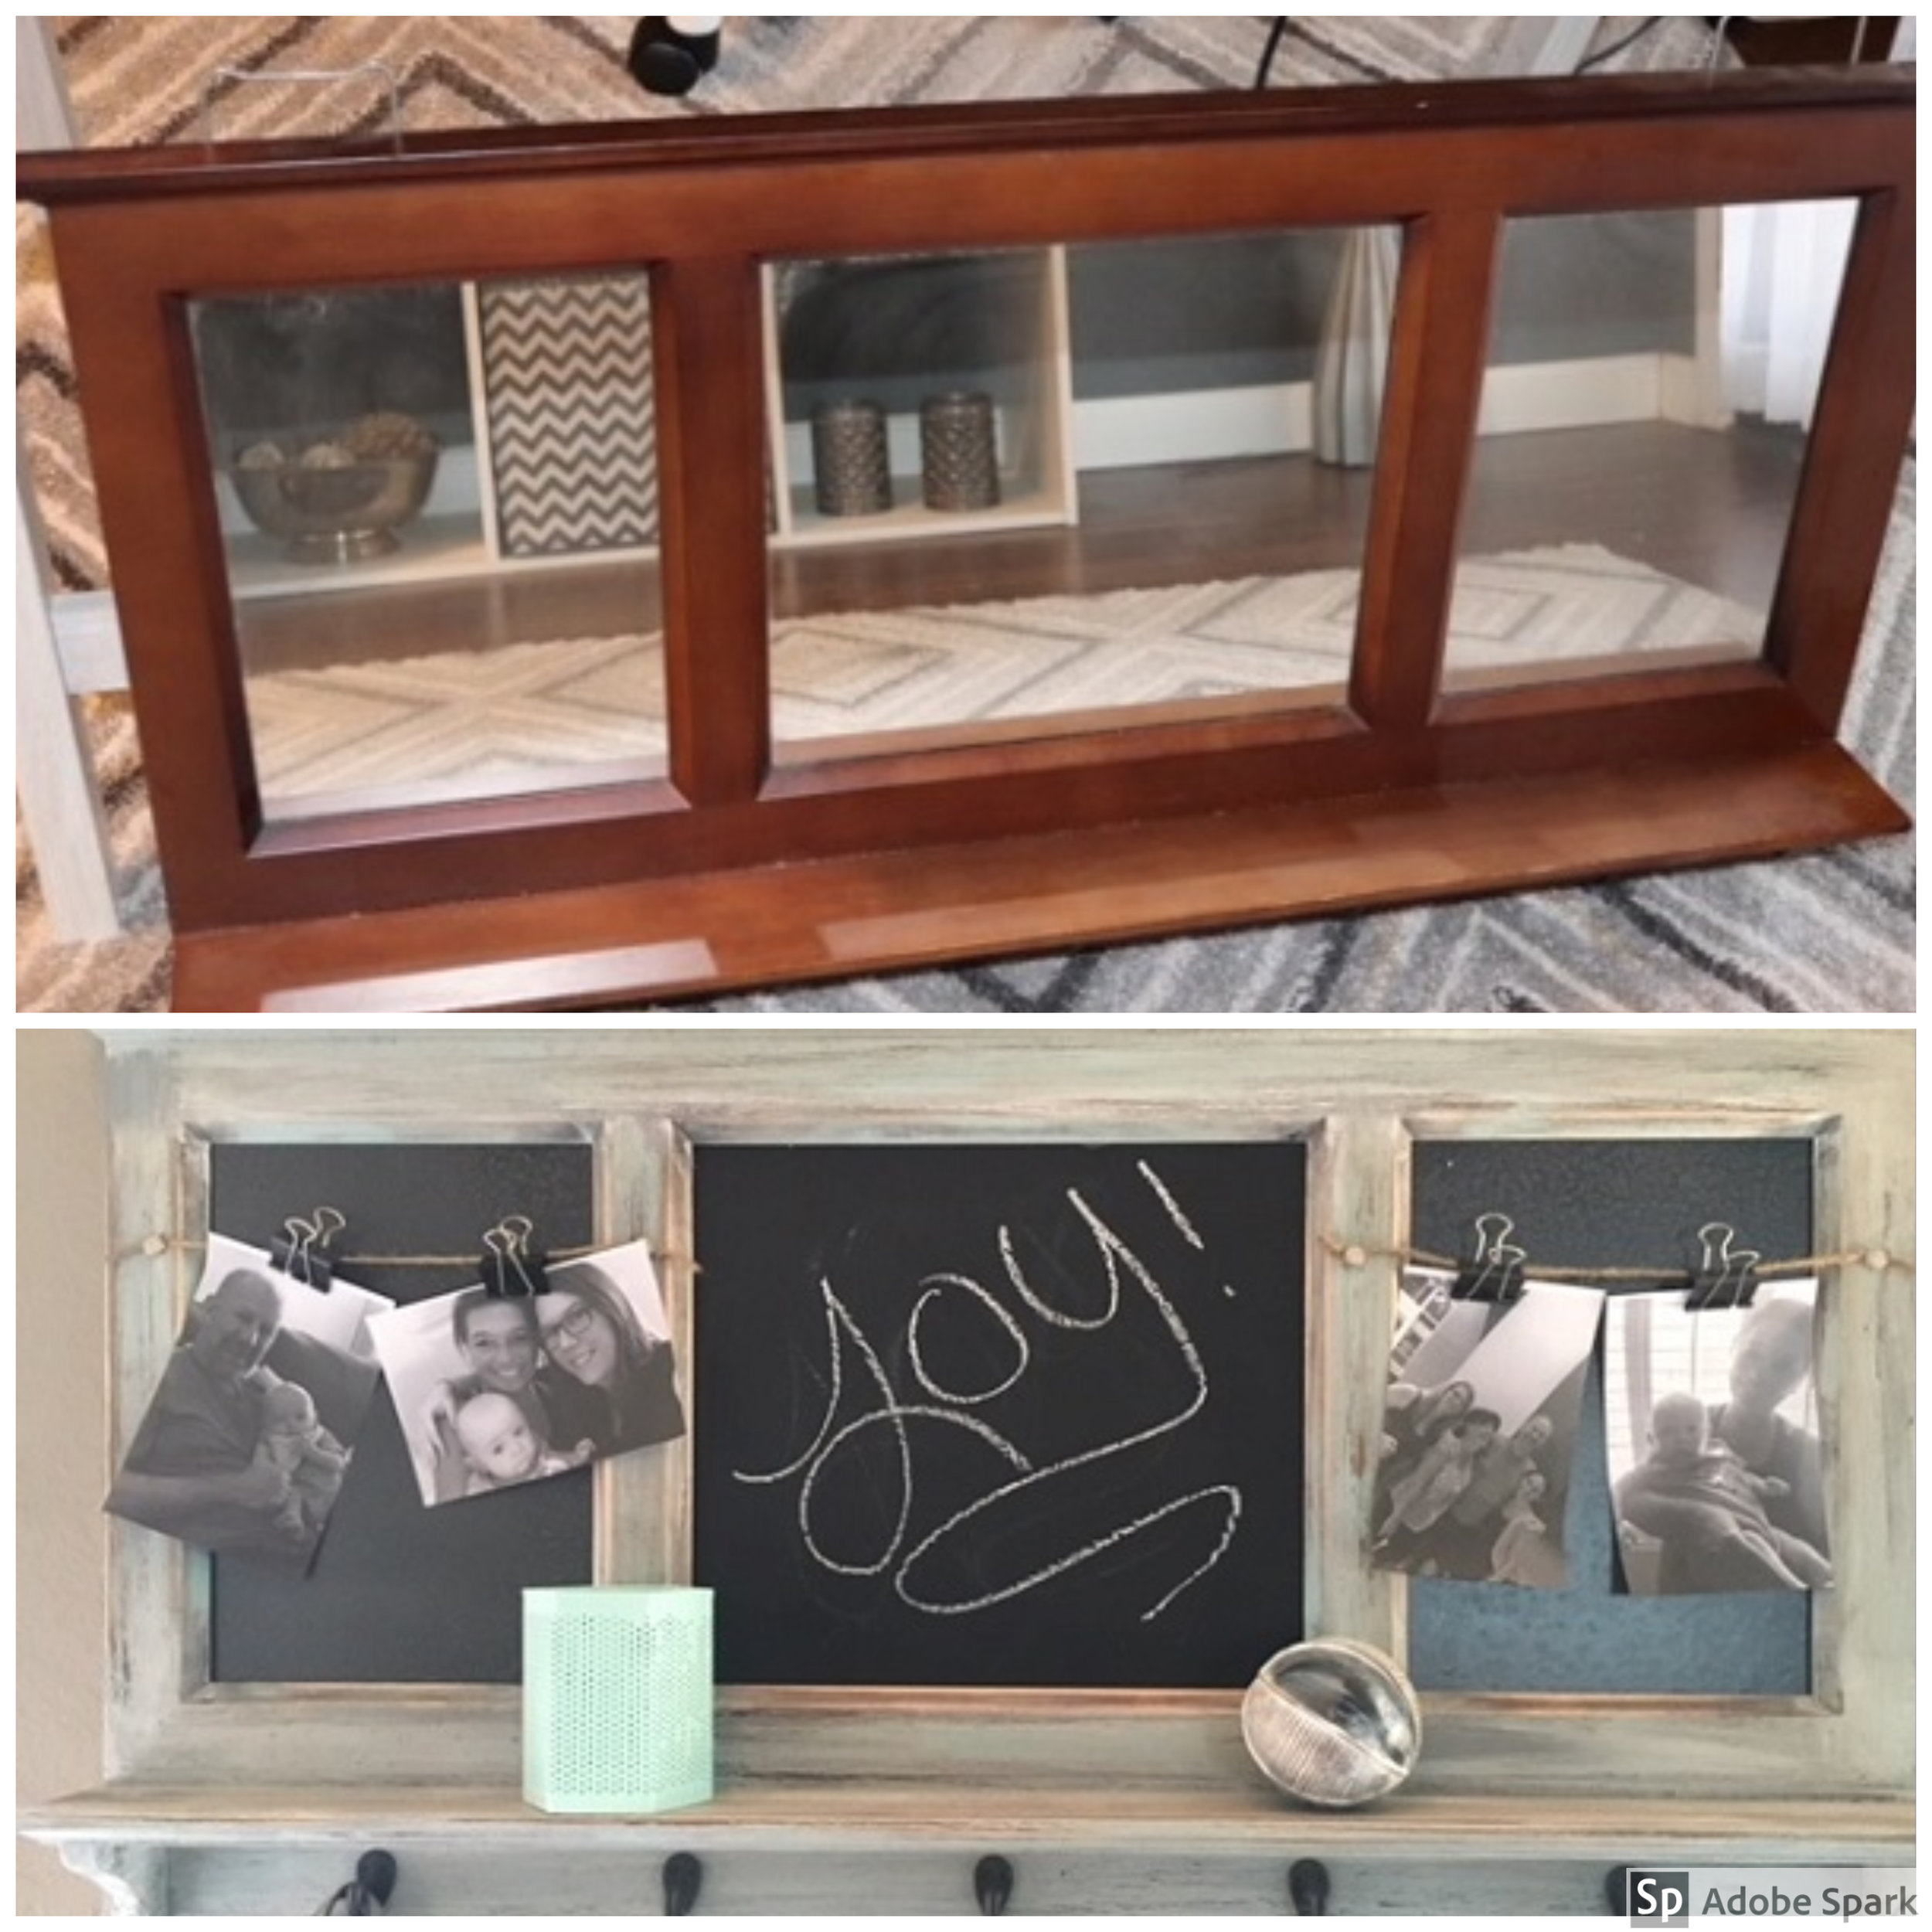 One final before and after. We love how the piece came out and the price was sure right!